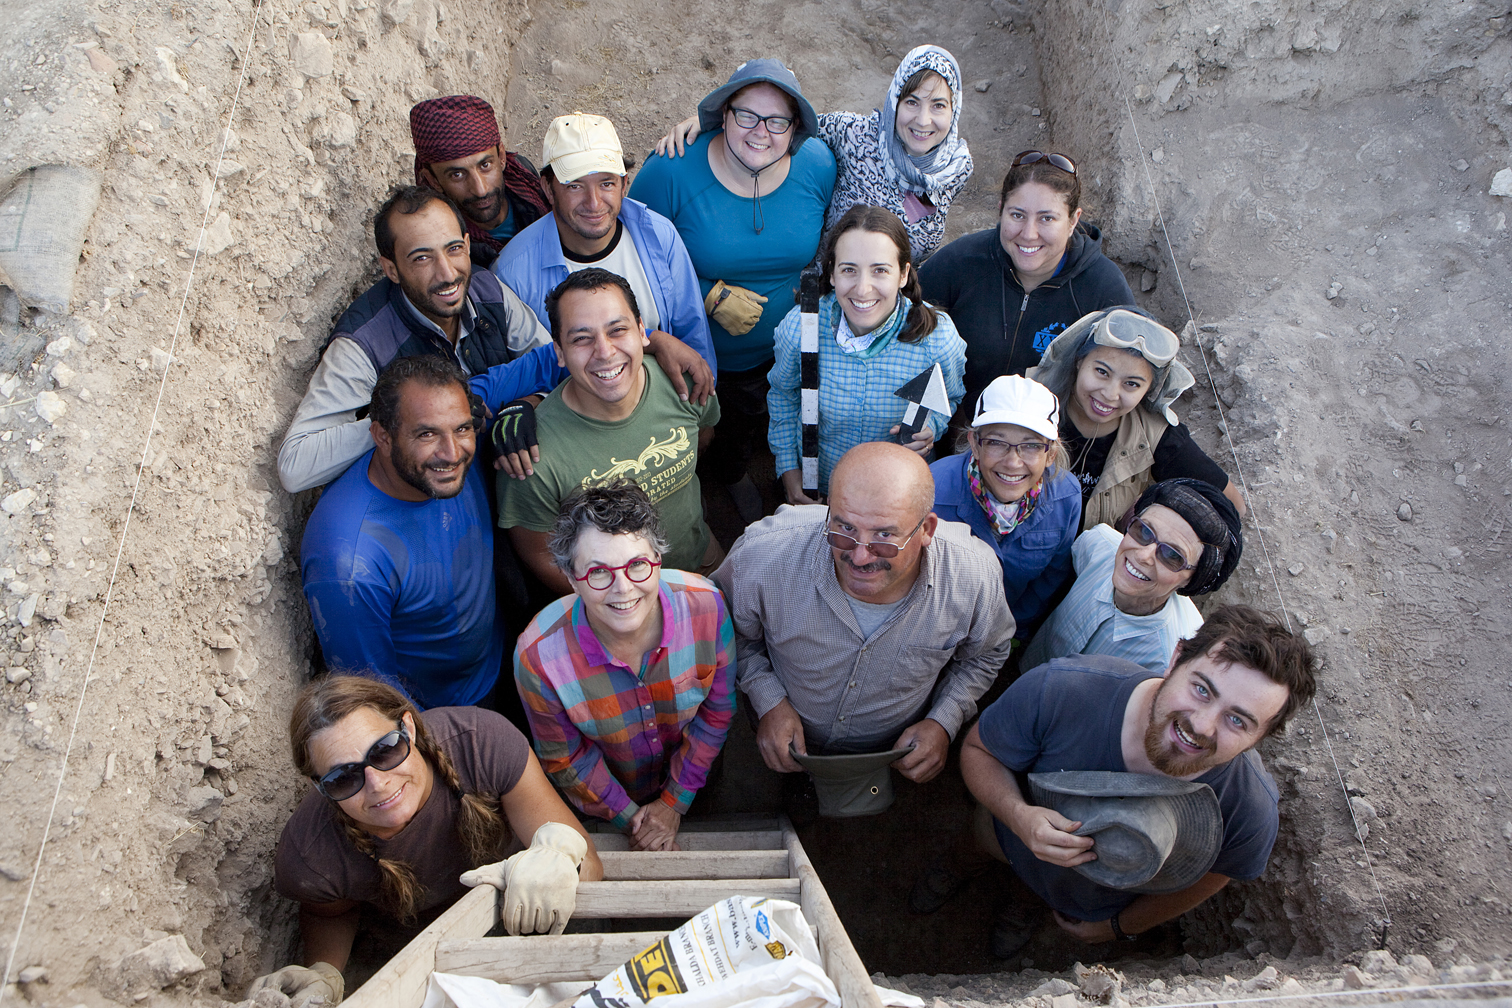 2016-07-05-dig-day-6-64829w